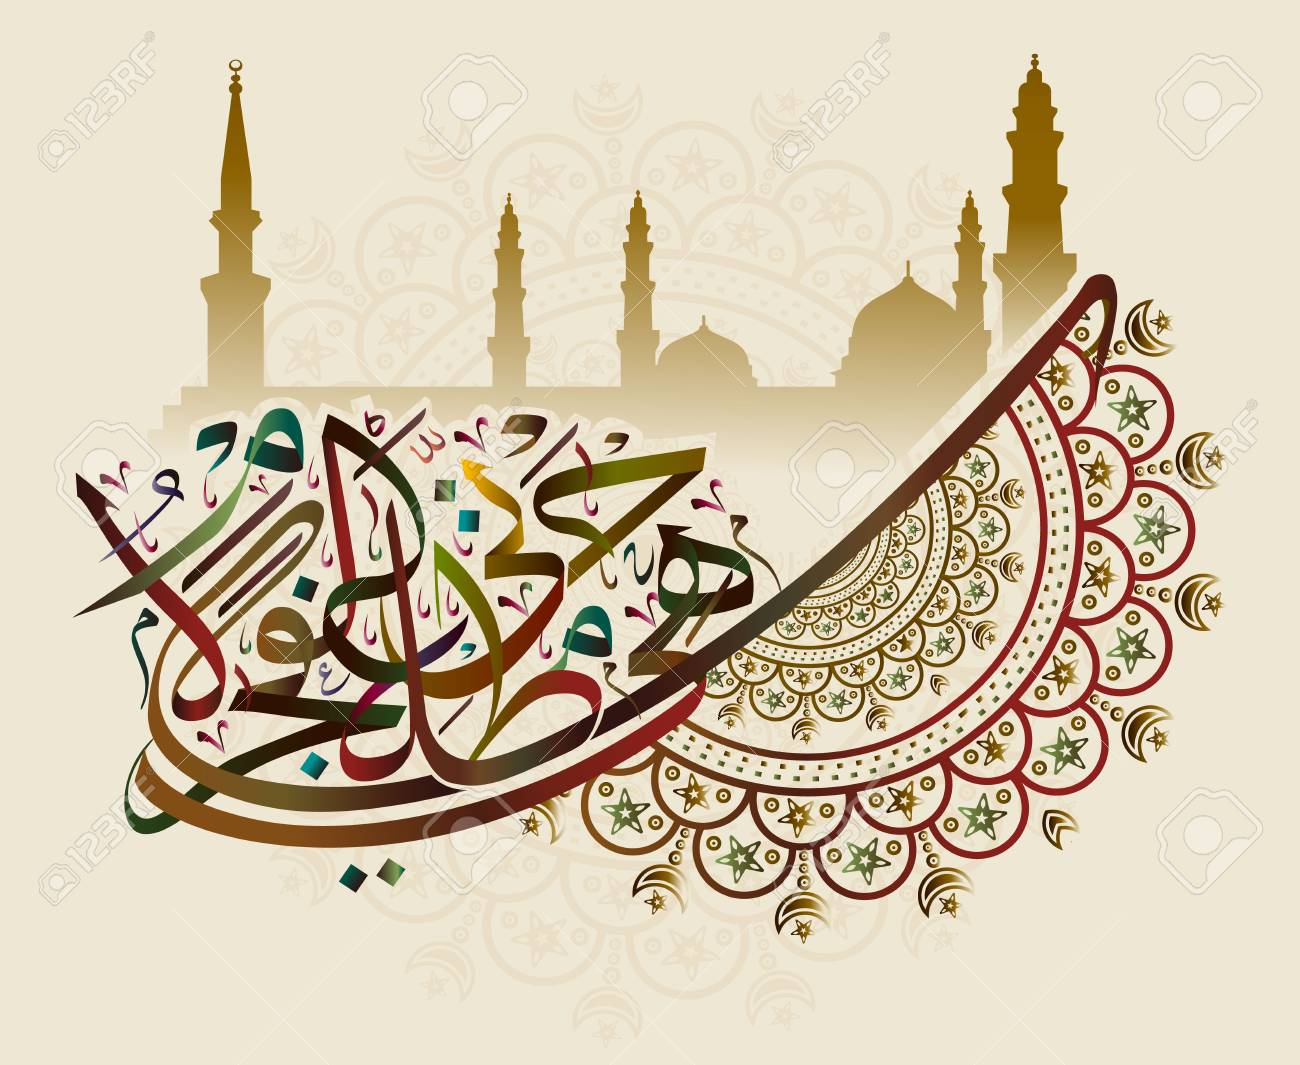 Islamic Calligraphy Is Looking For The Quran Surah Al Qadr Predestination